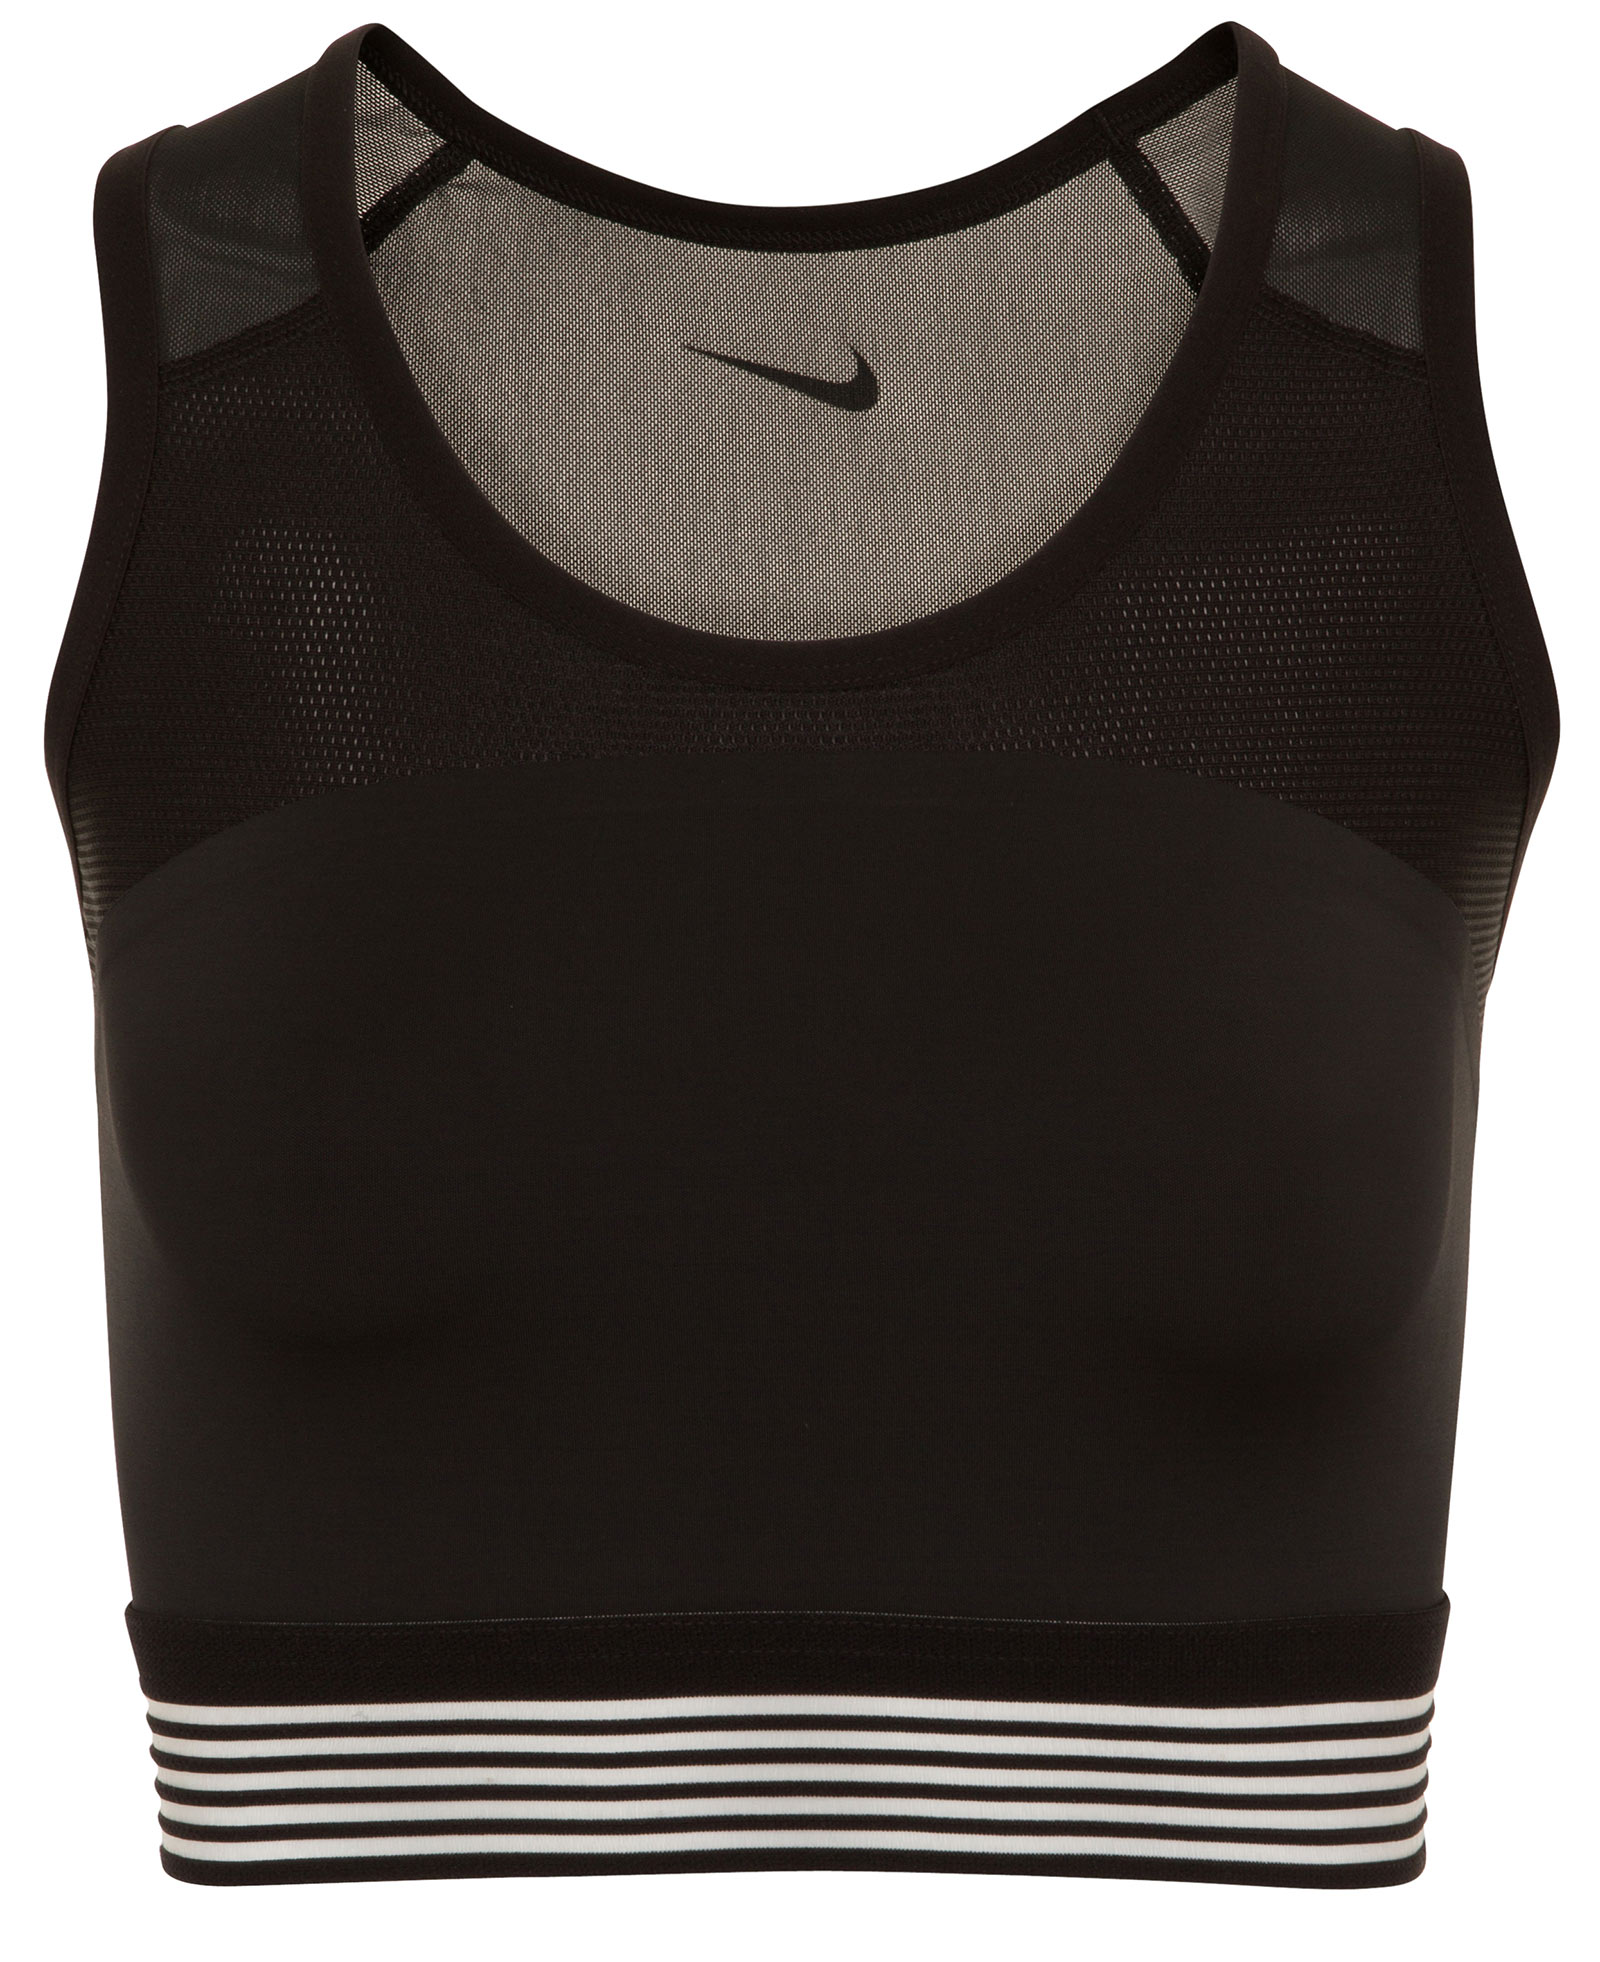 new nike motion womens training gym tank crop top all. Black Bedroom Furniture Sets. Home Design Ideas